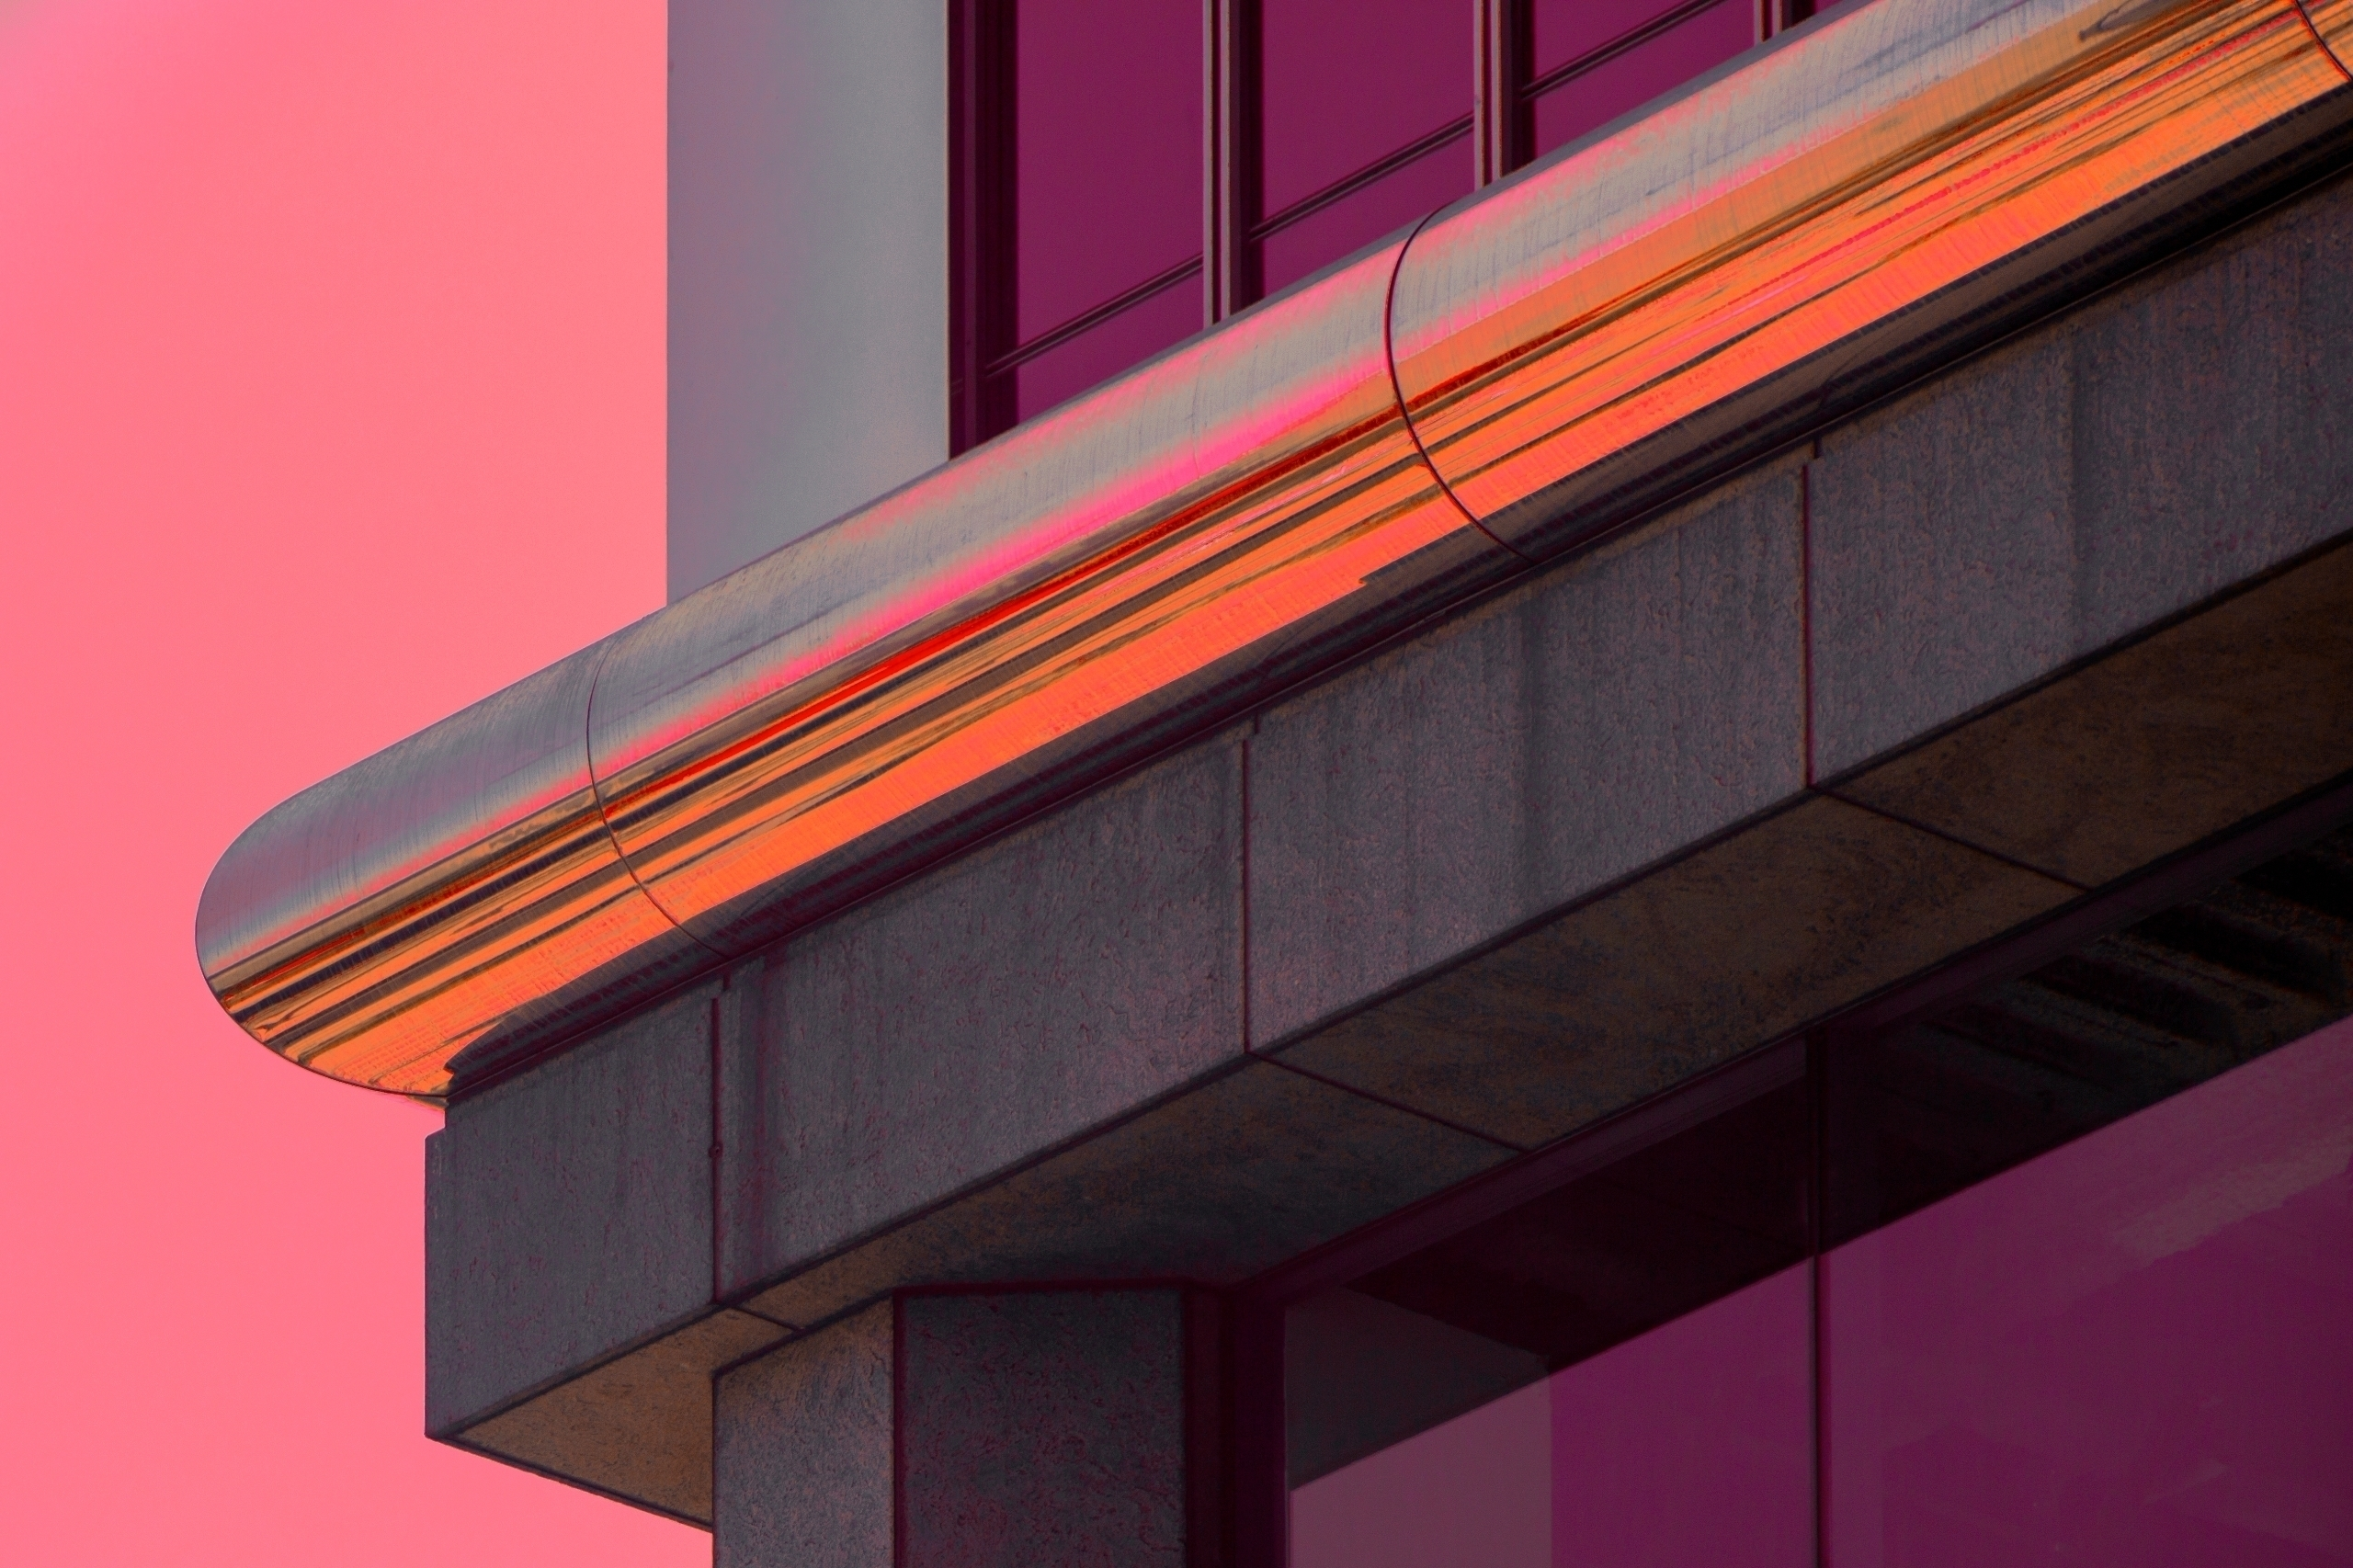 charged - architecture, vibrant - kylie_hazzard_visuals | ello